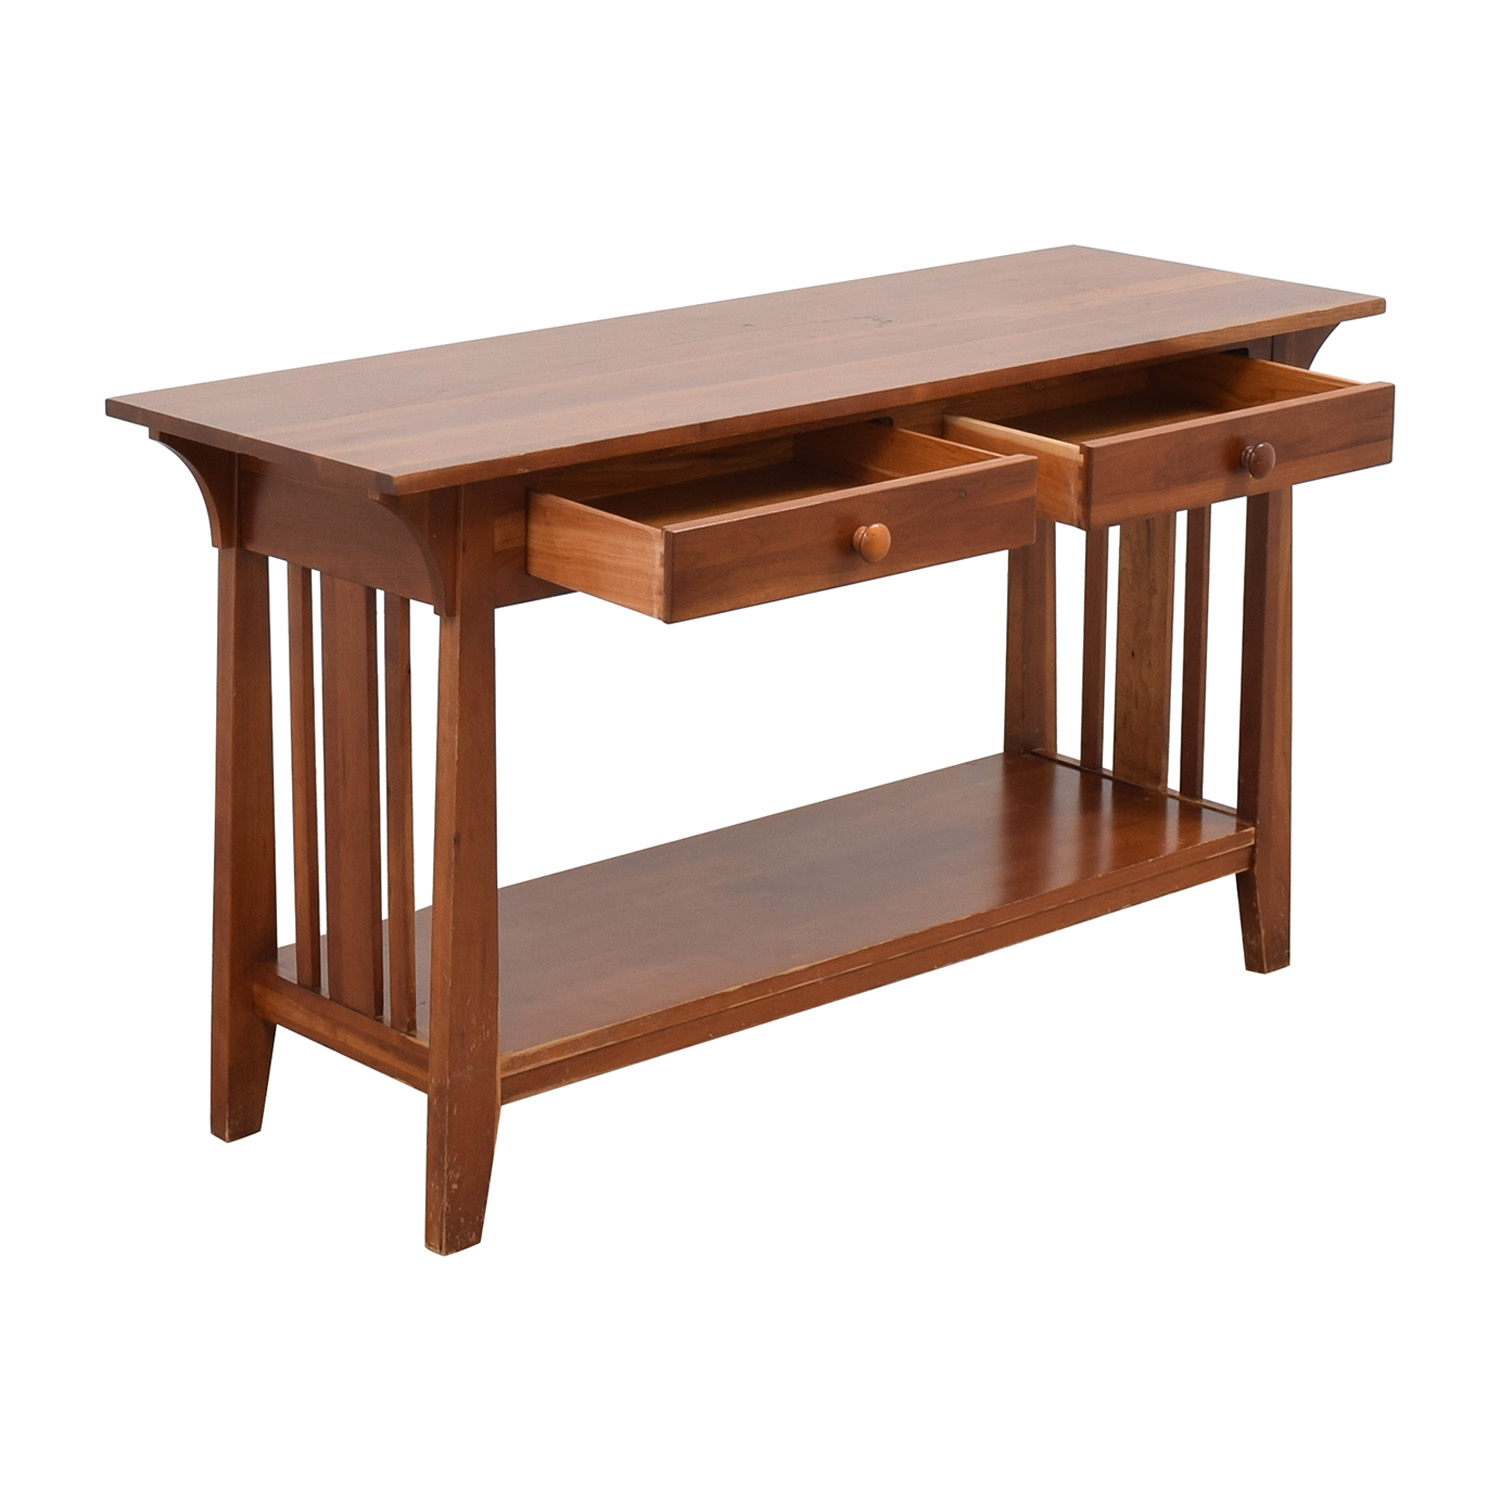 buy Ethan Allen Ethan Allen Console with Drawers online